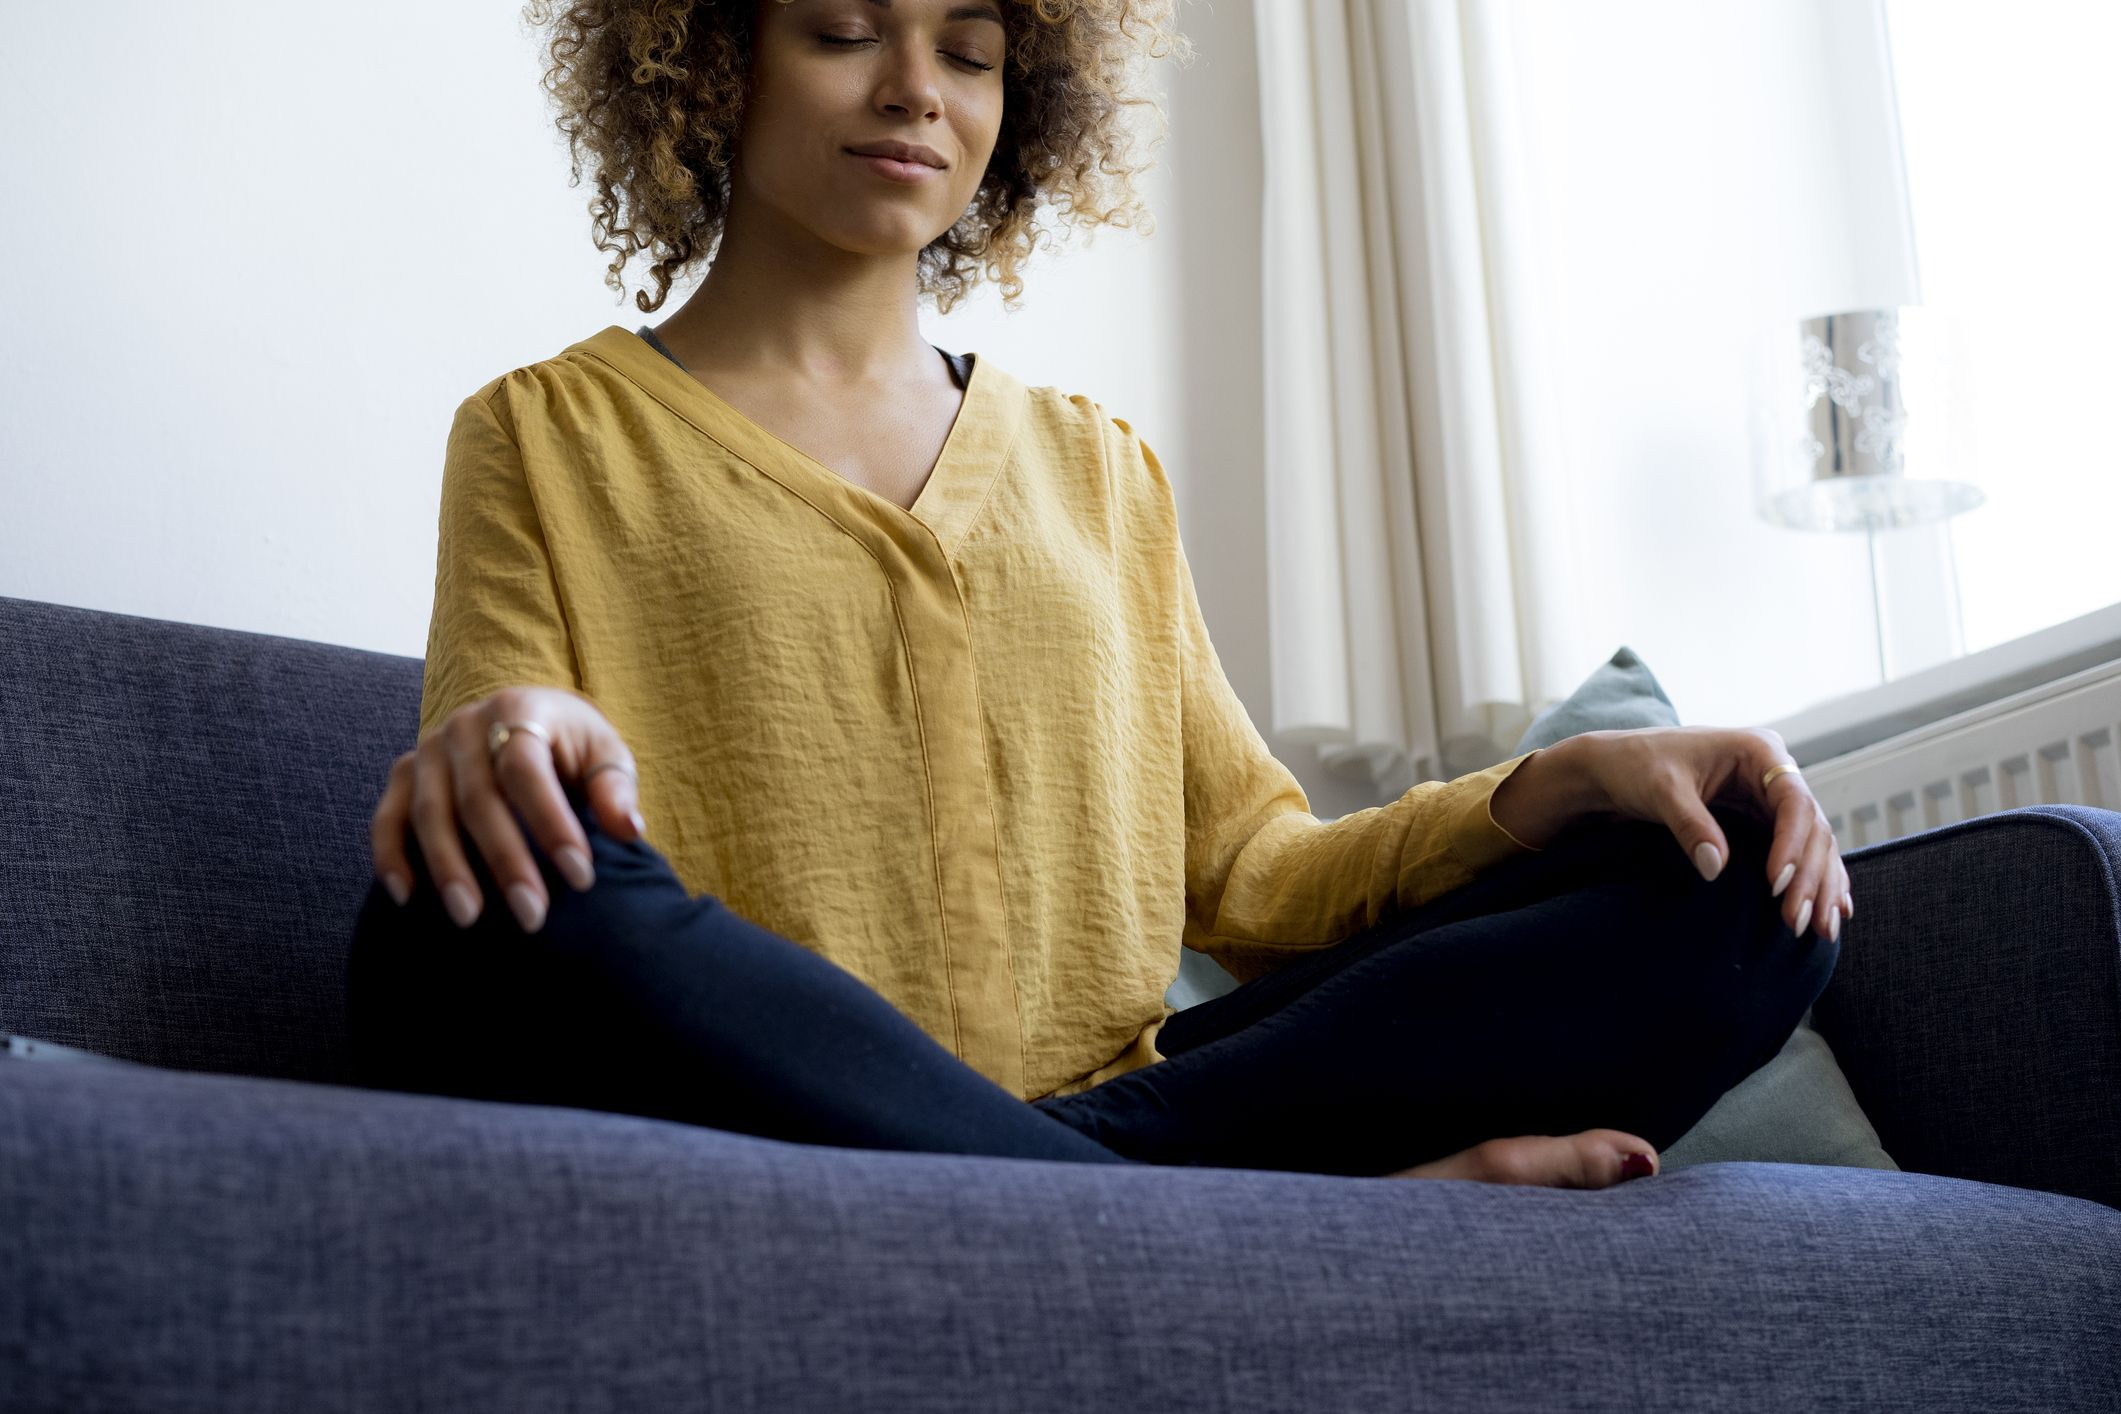 How to get to sleep using mindfulness techniques